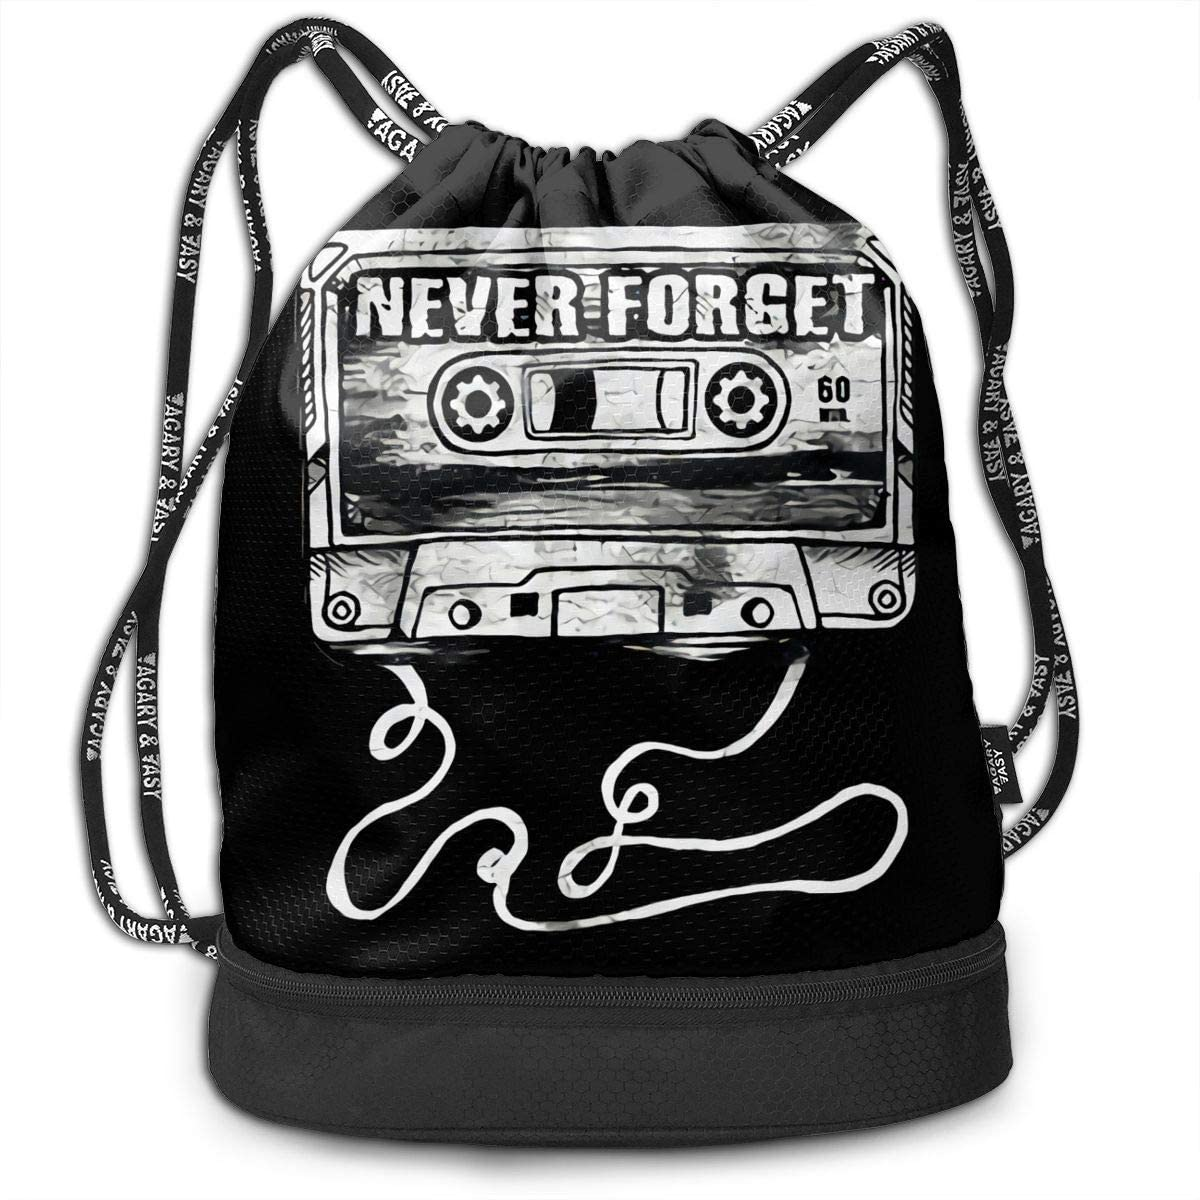 Never Forget Graphic Funny Multifunctional Travel Sports And Leisure Drawstring Backpack